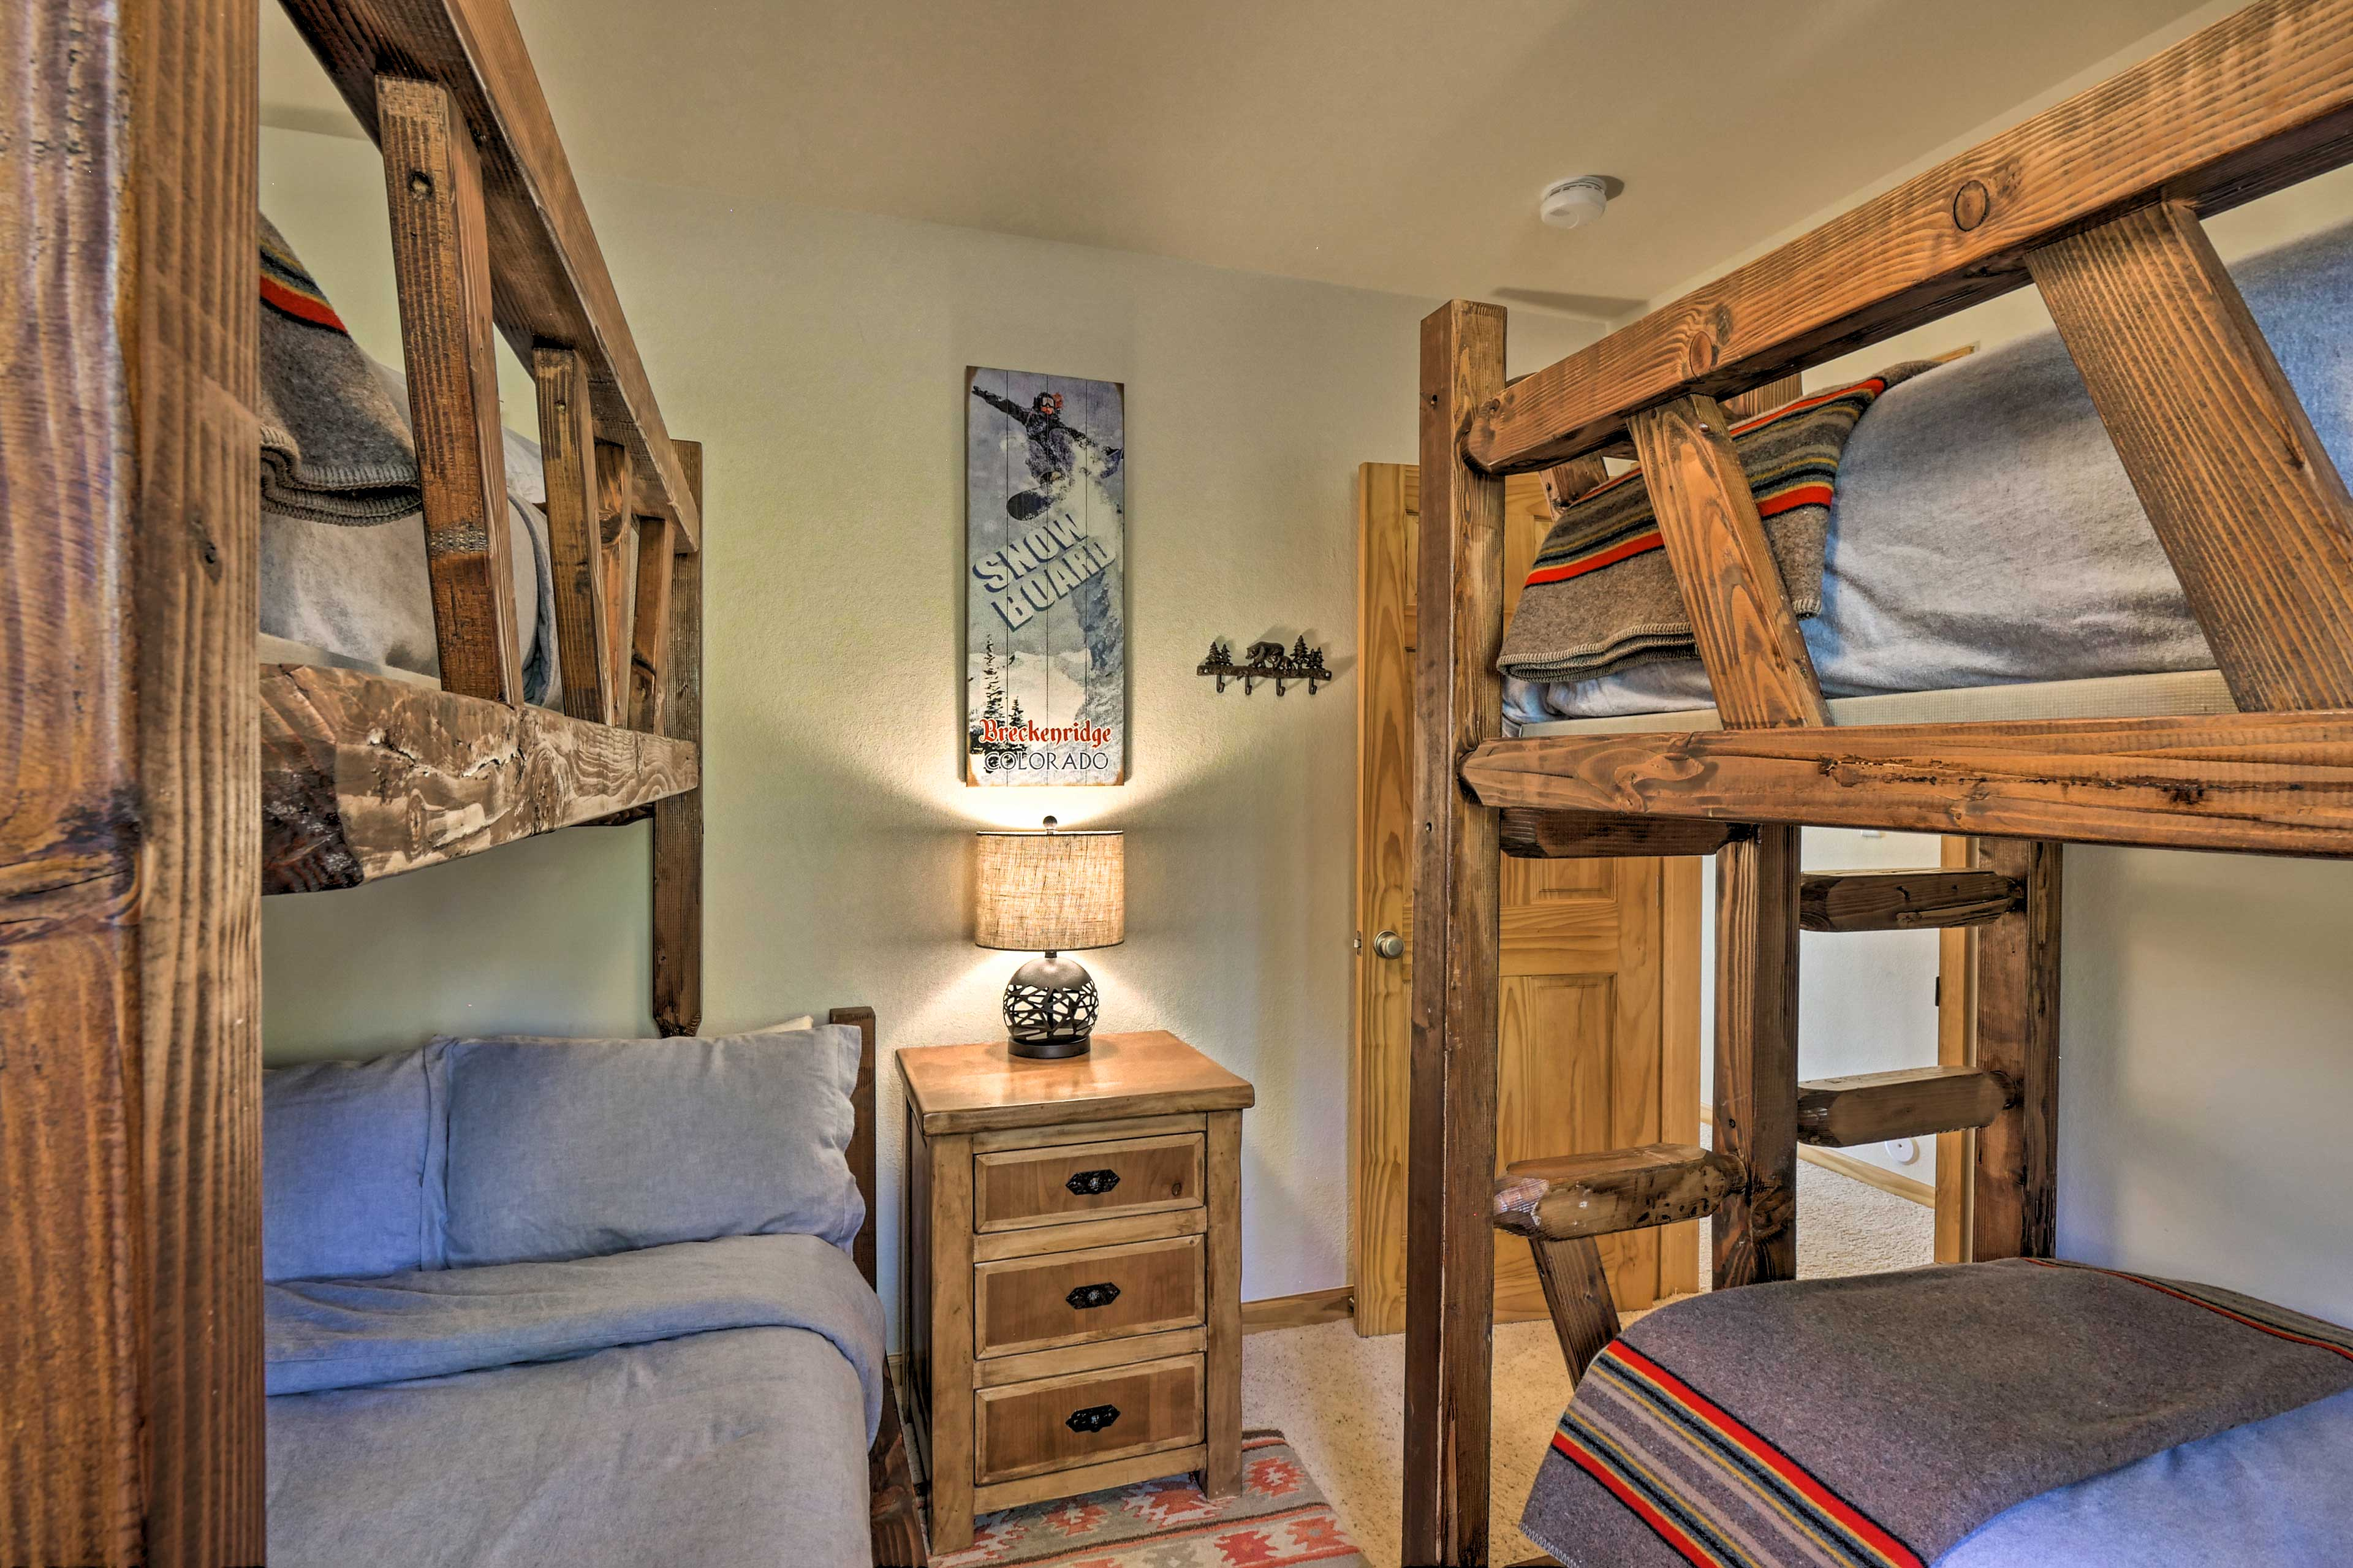 Five guests can sleep in this room.